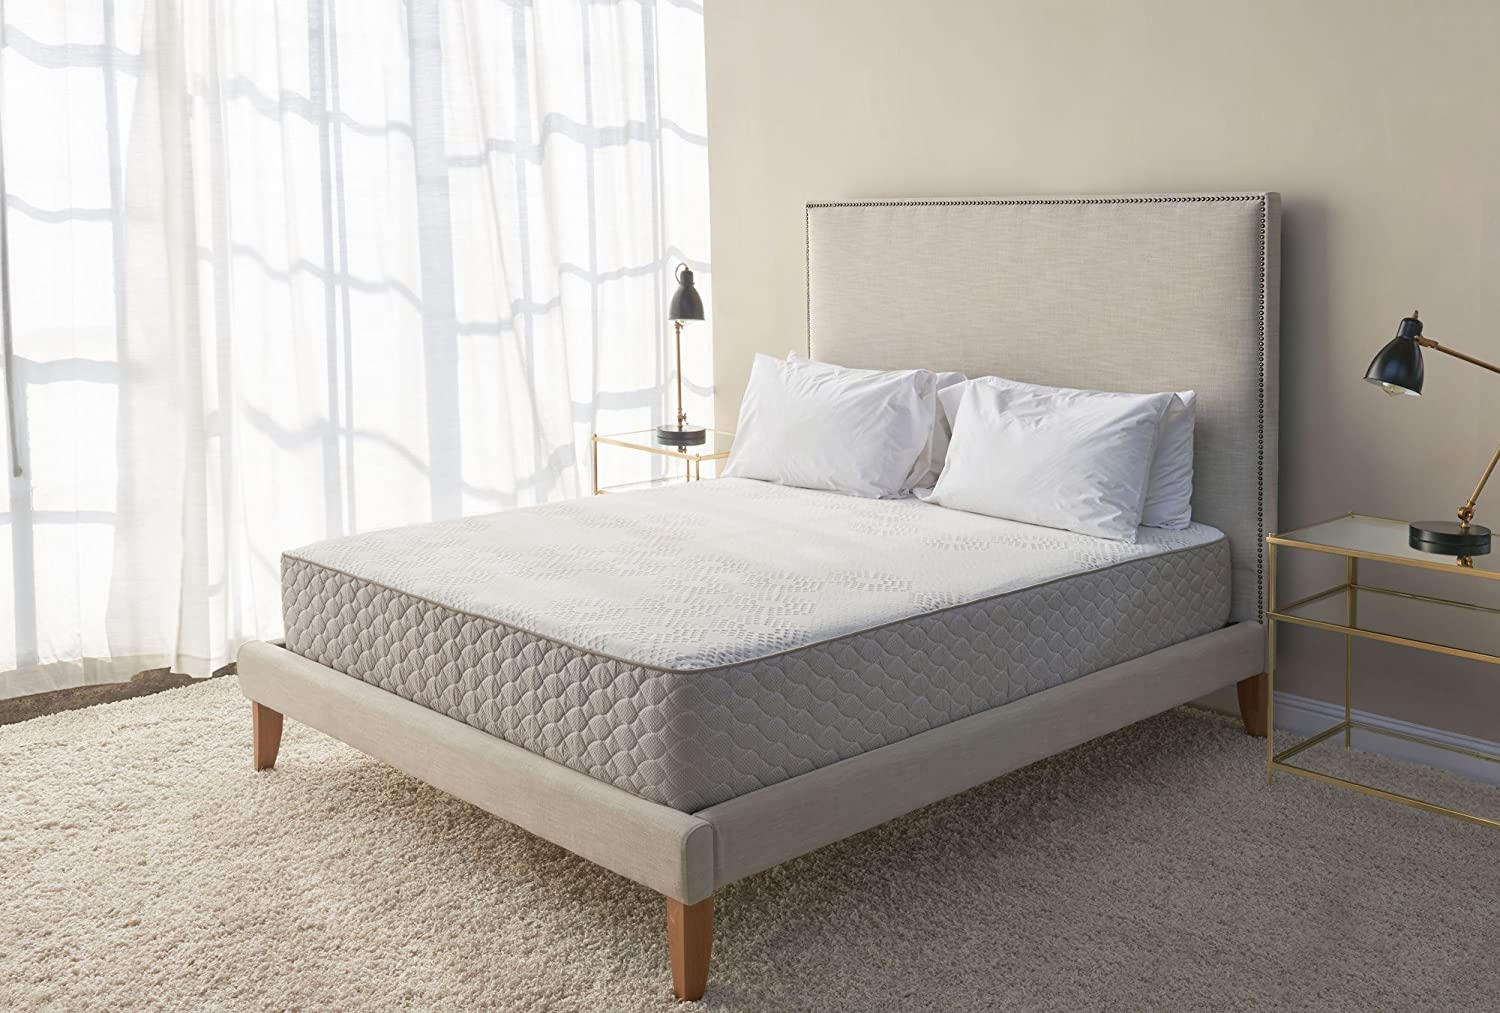 Design Tate Bed amazon com brentwood home s bed latex and gel memory foam mattress made in california firm king kitchen dining